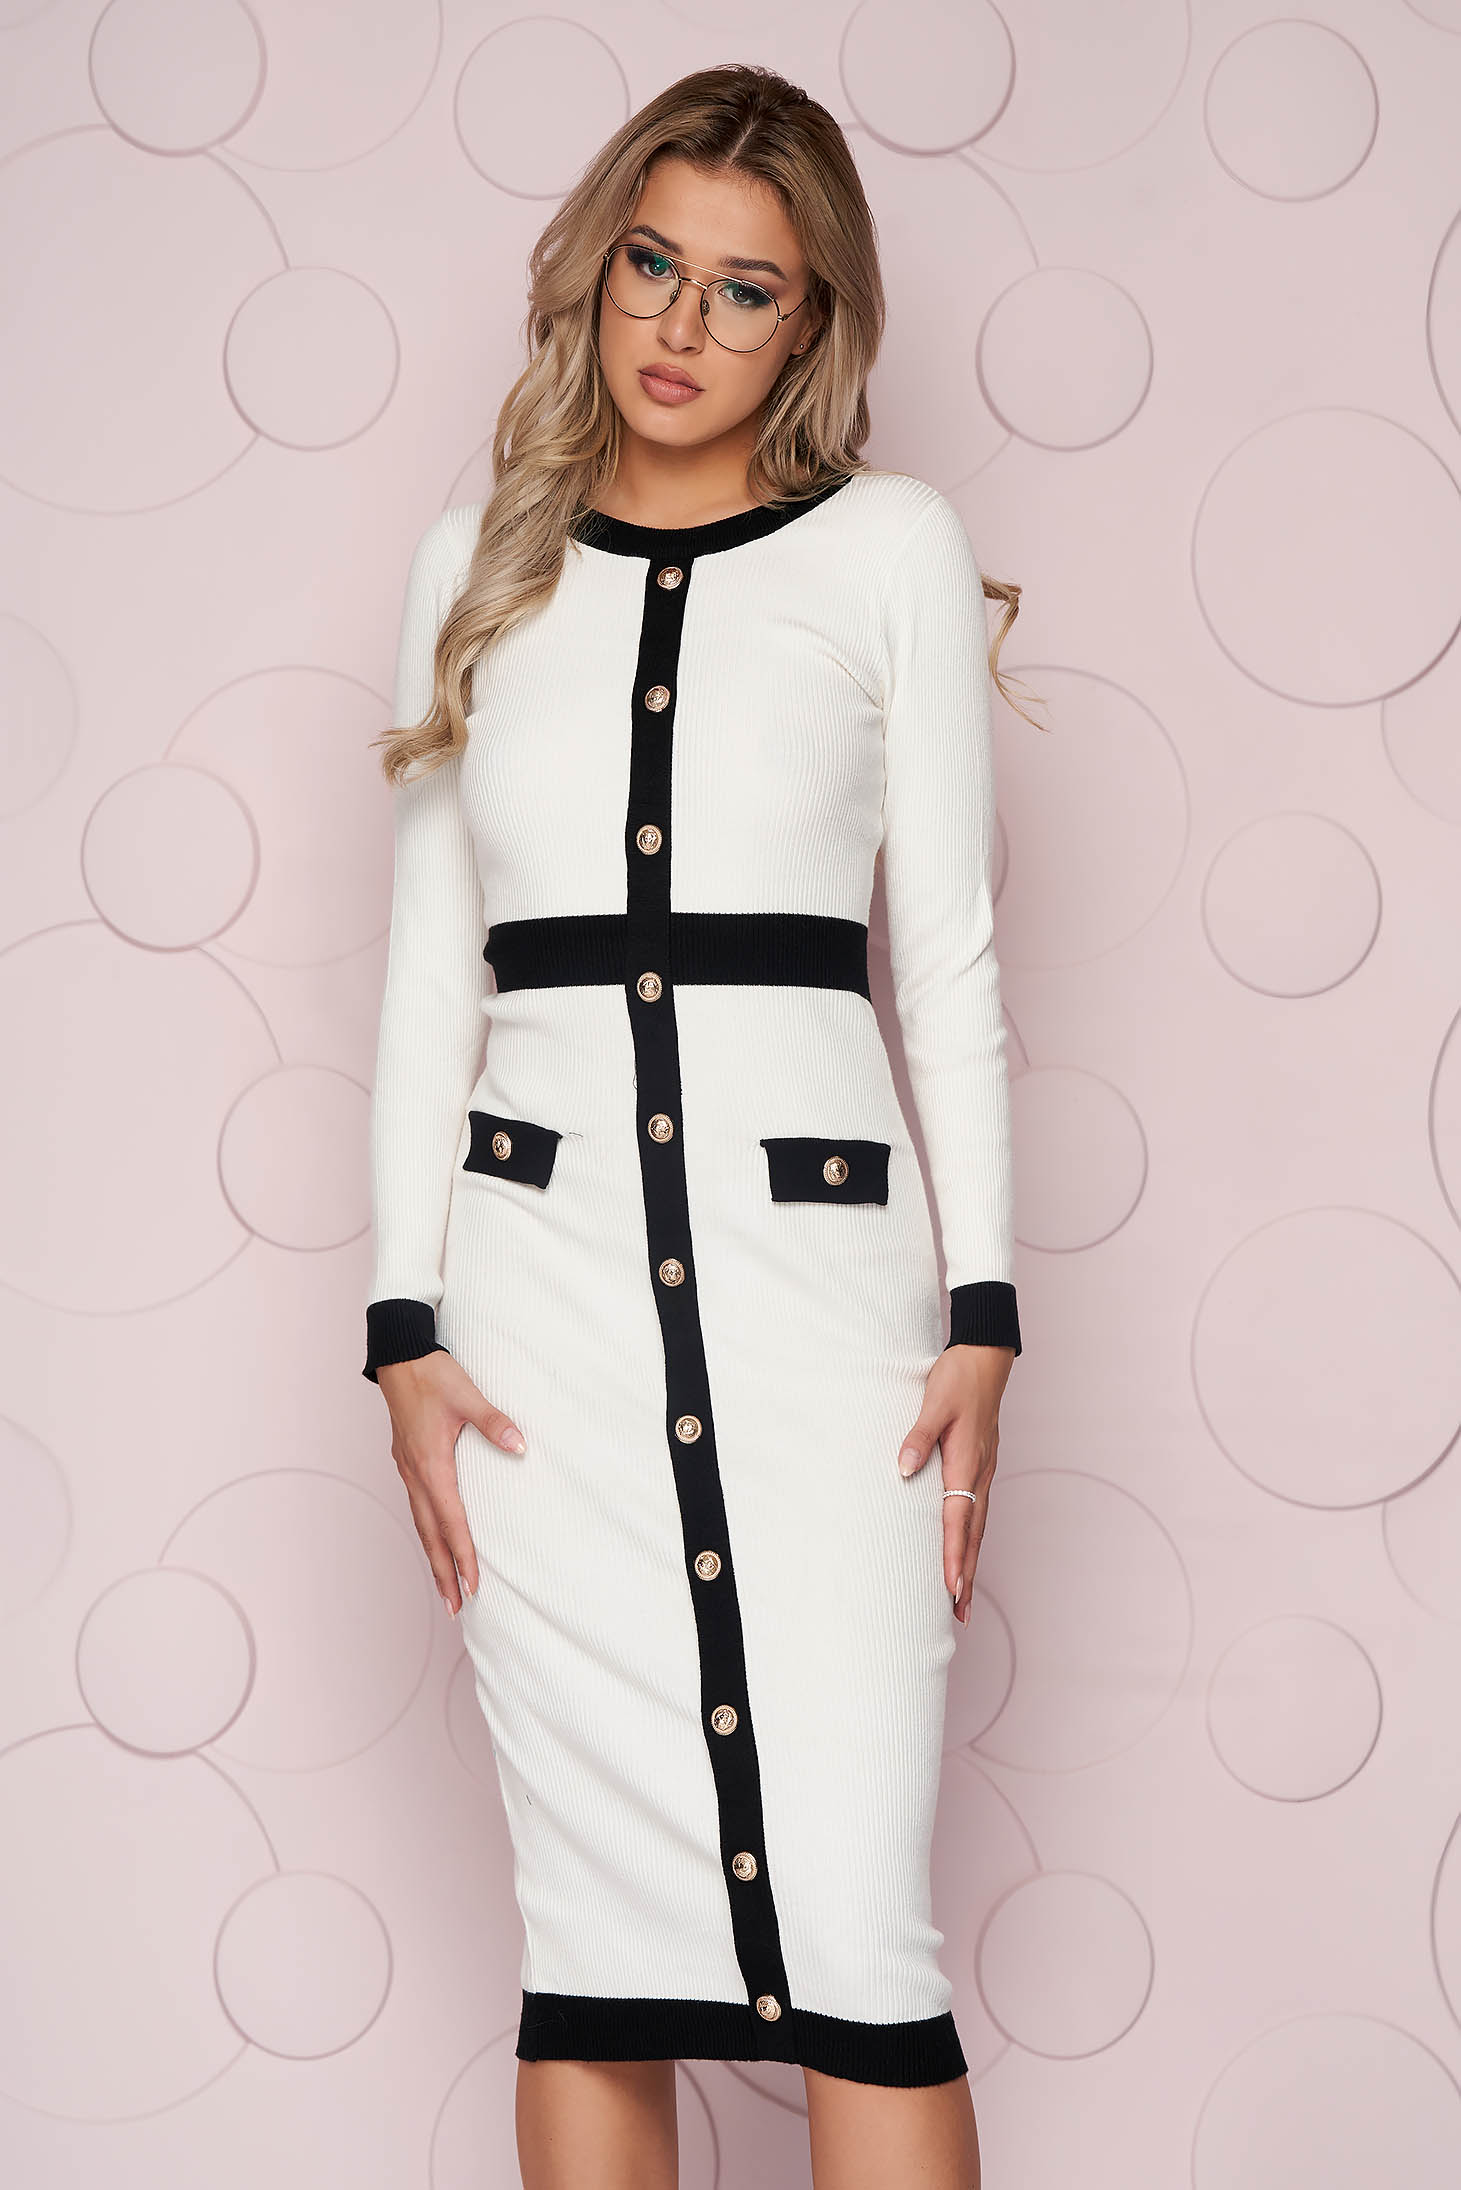 White dress with faux pockets pencil with button accessories knitted fabric midi